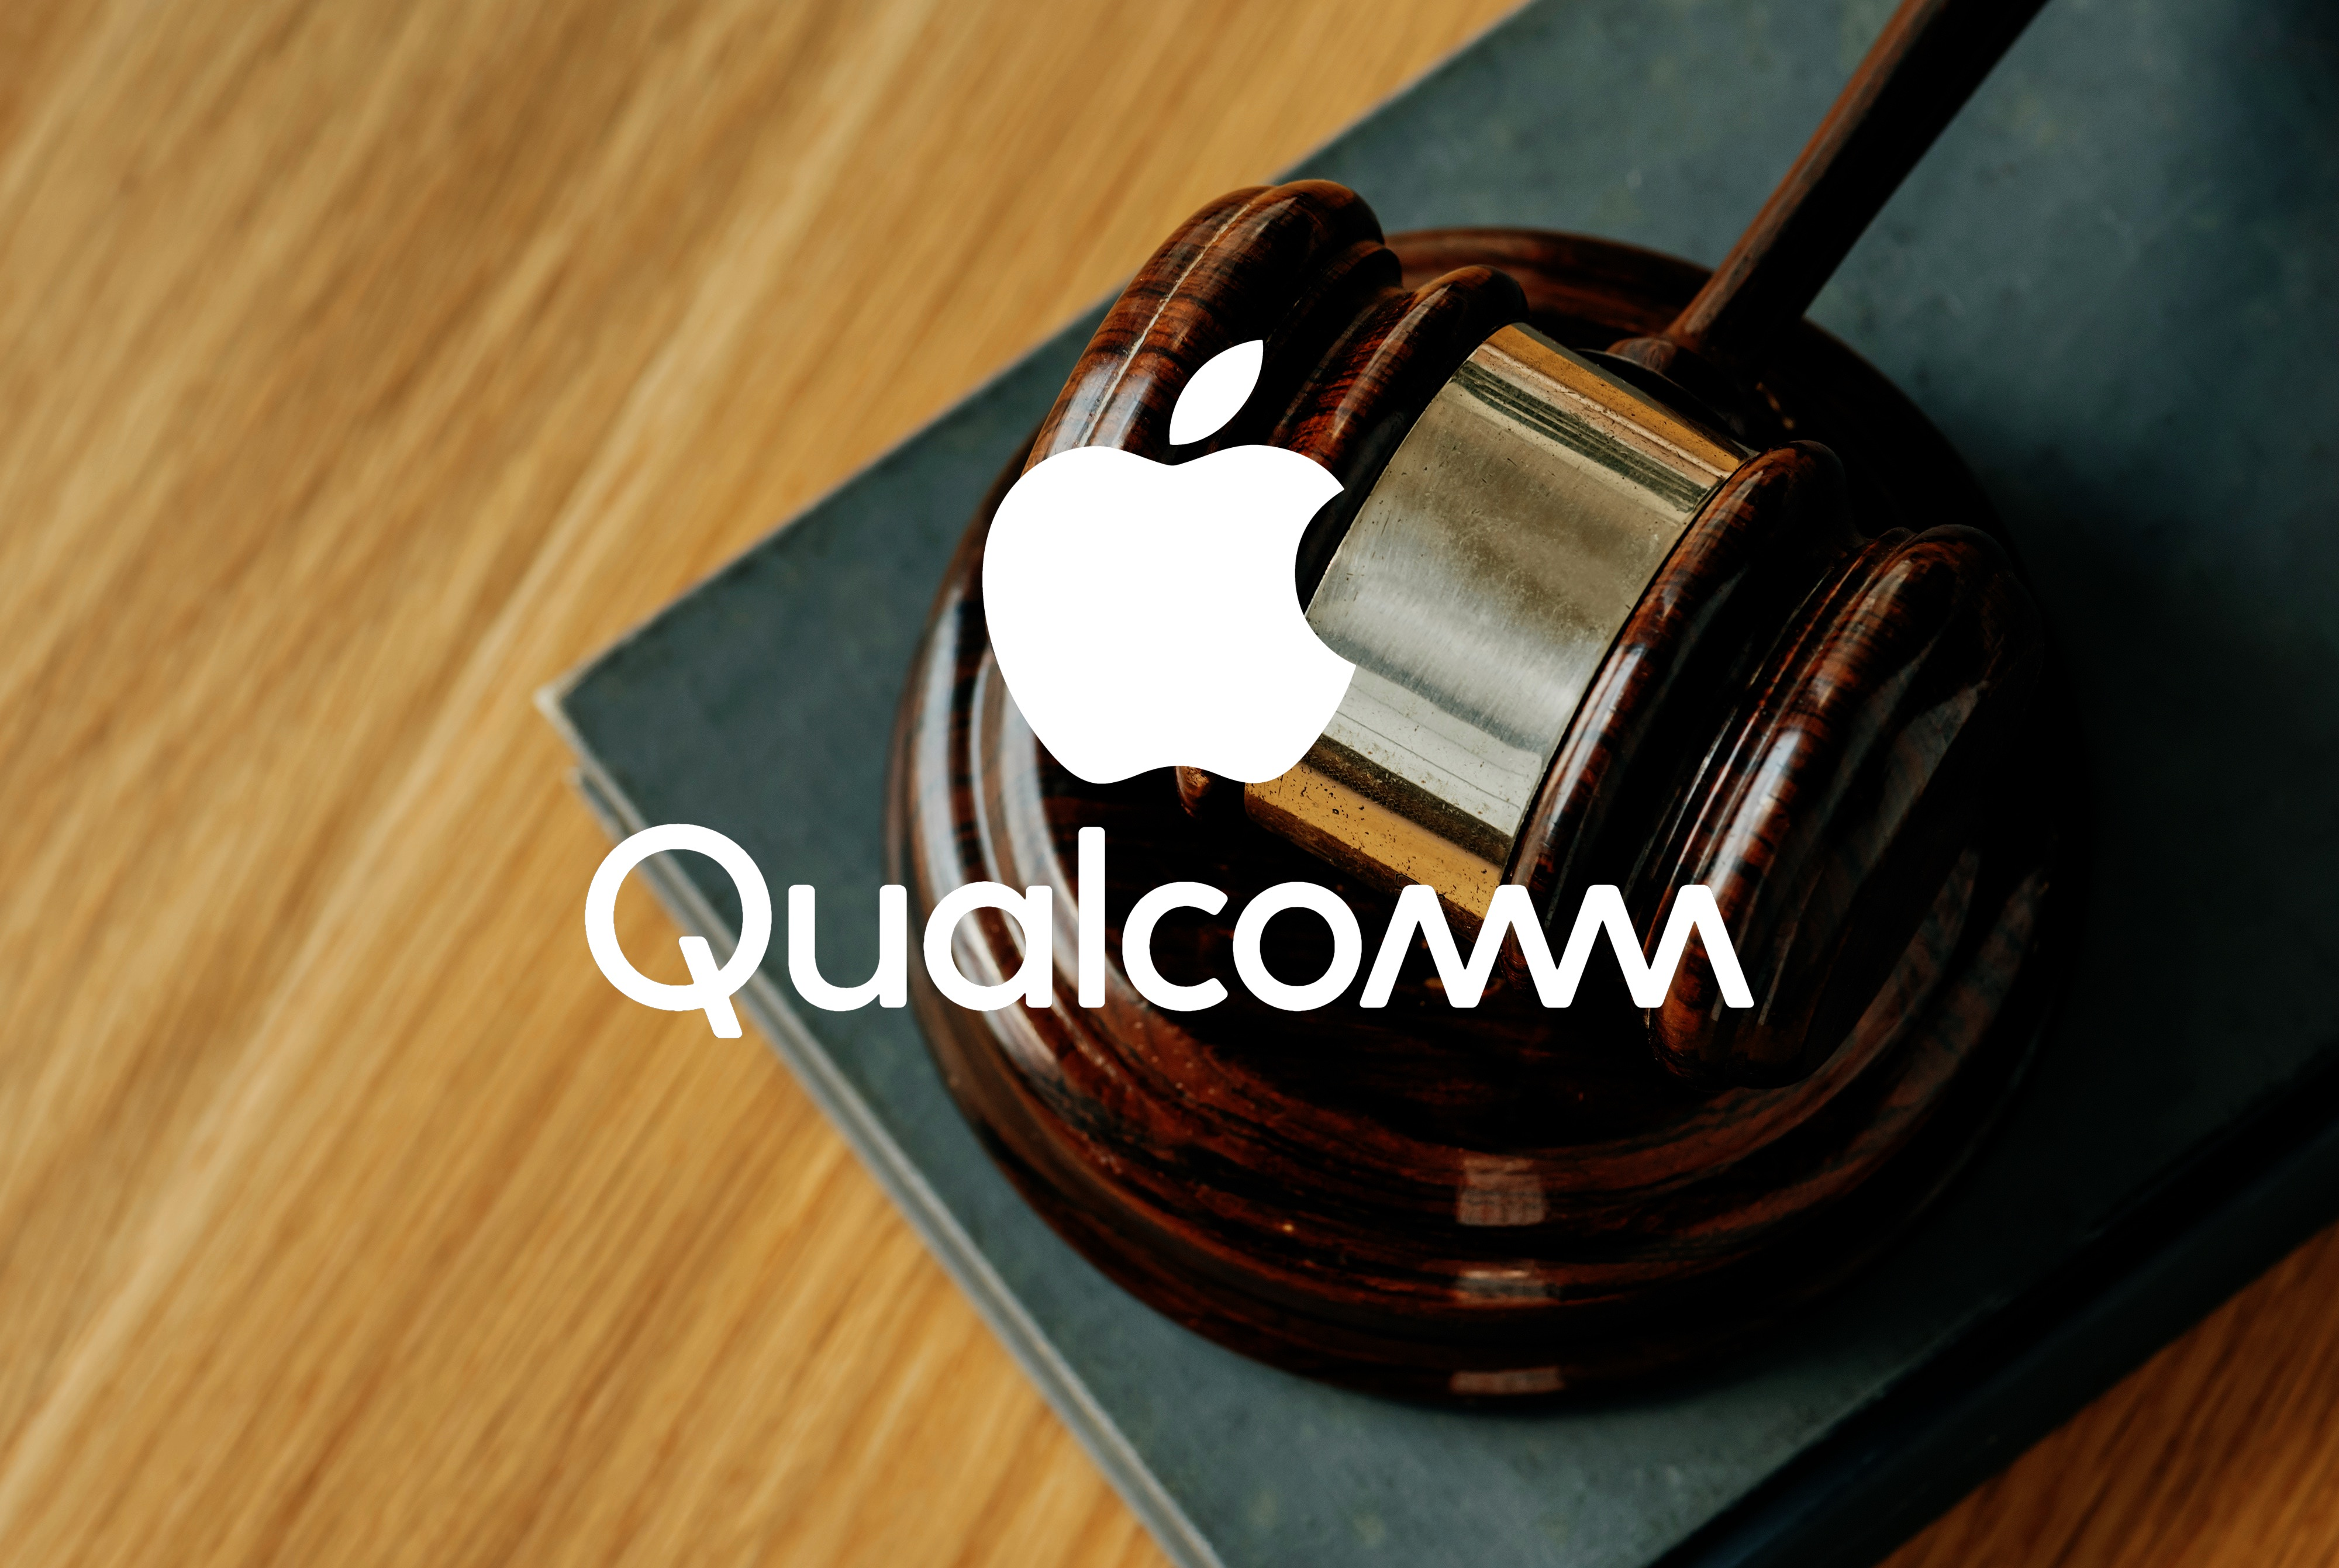 Apple demanded that Qualcomm $ 1 billion, to use the chips in the iPhone